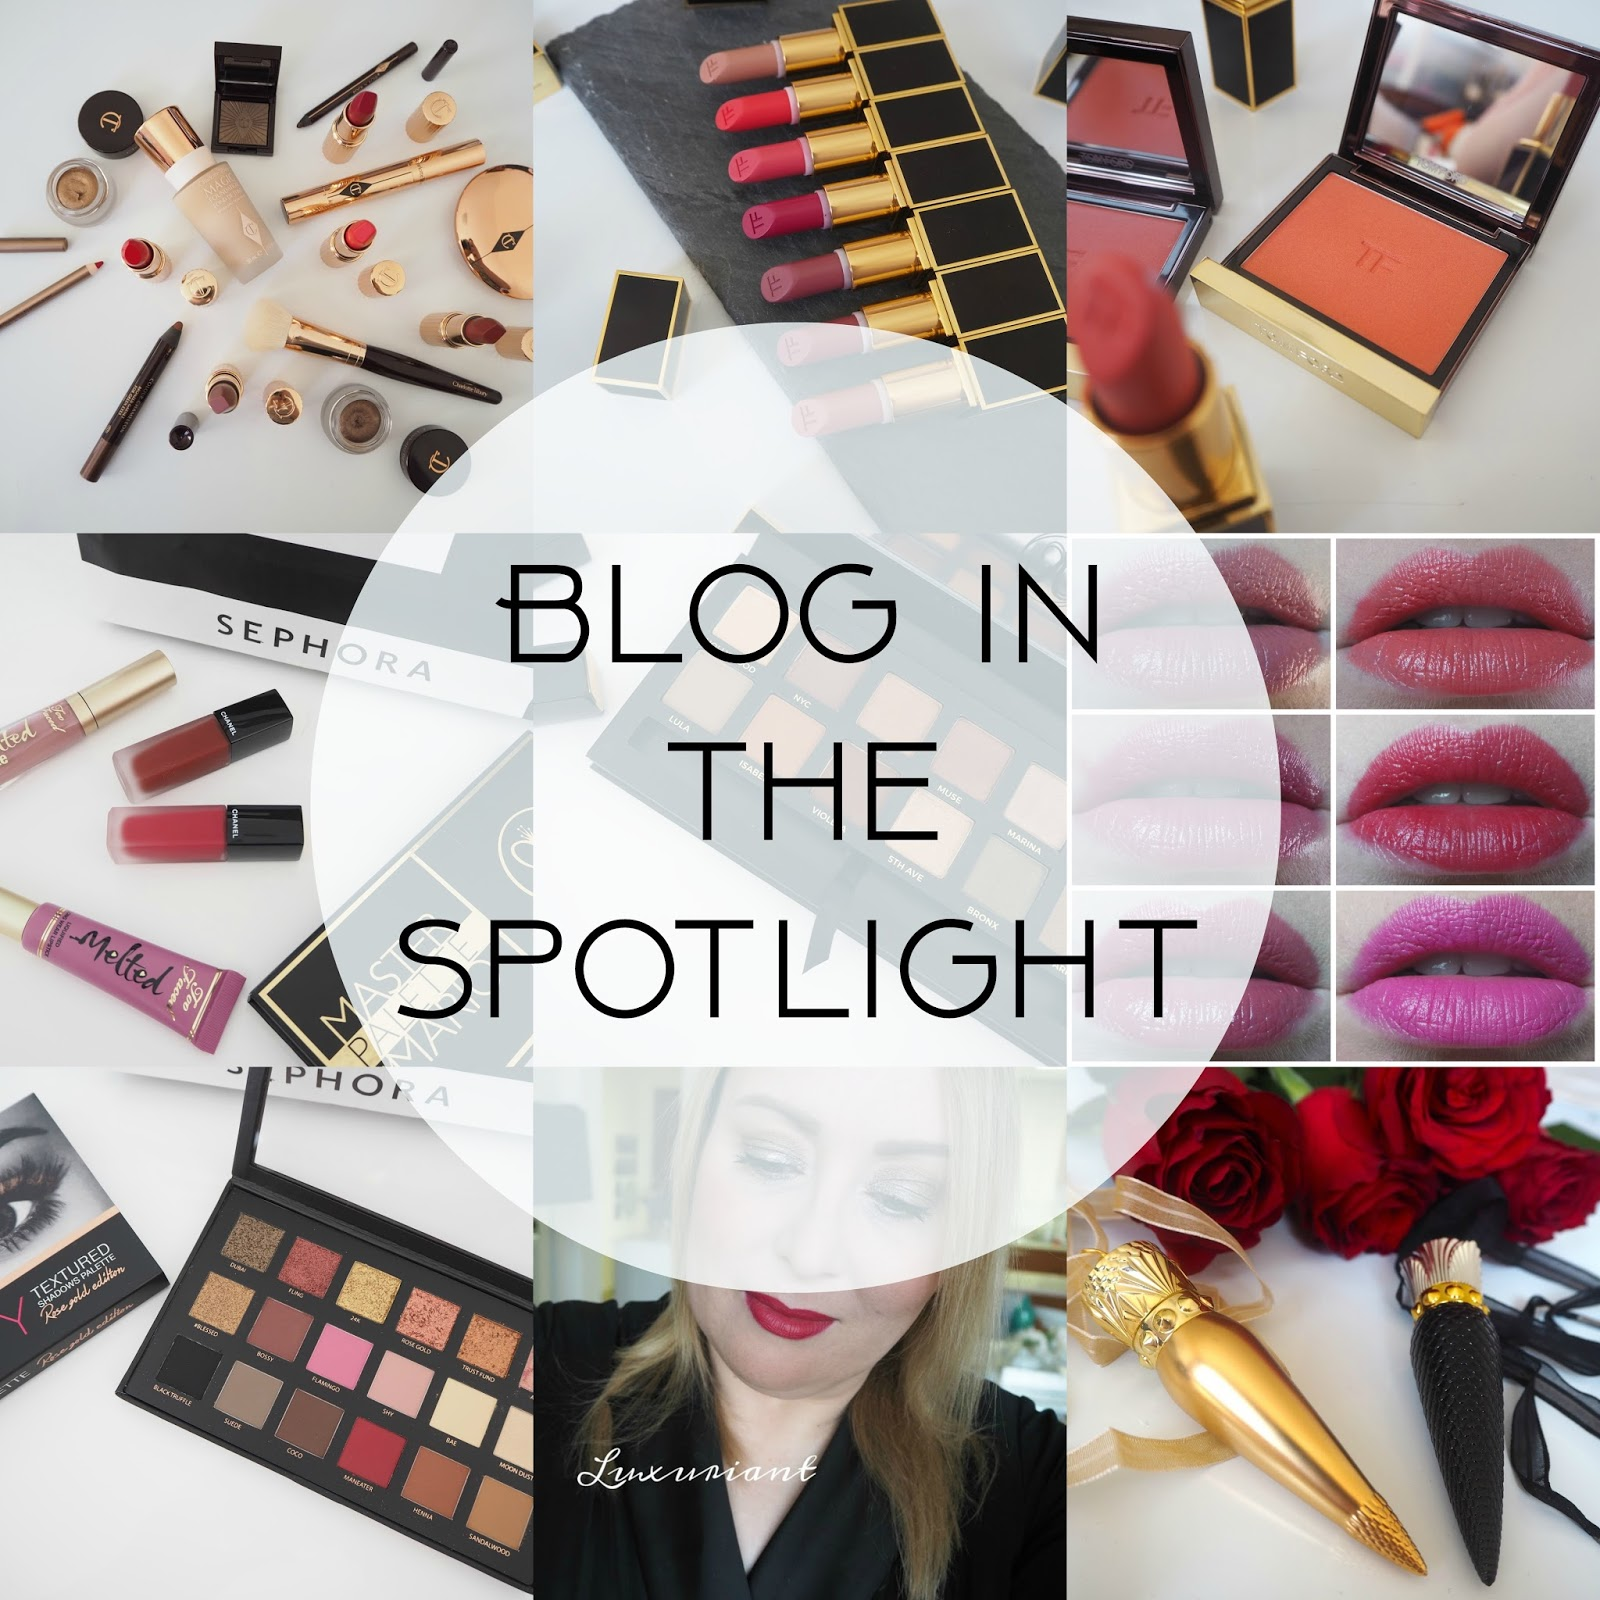 Blog in the spotlight - Stacey ExpatMakeup Addict